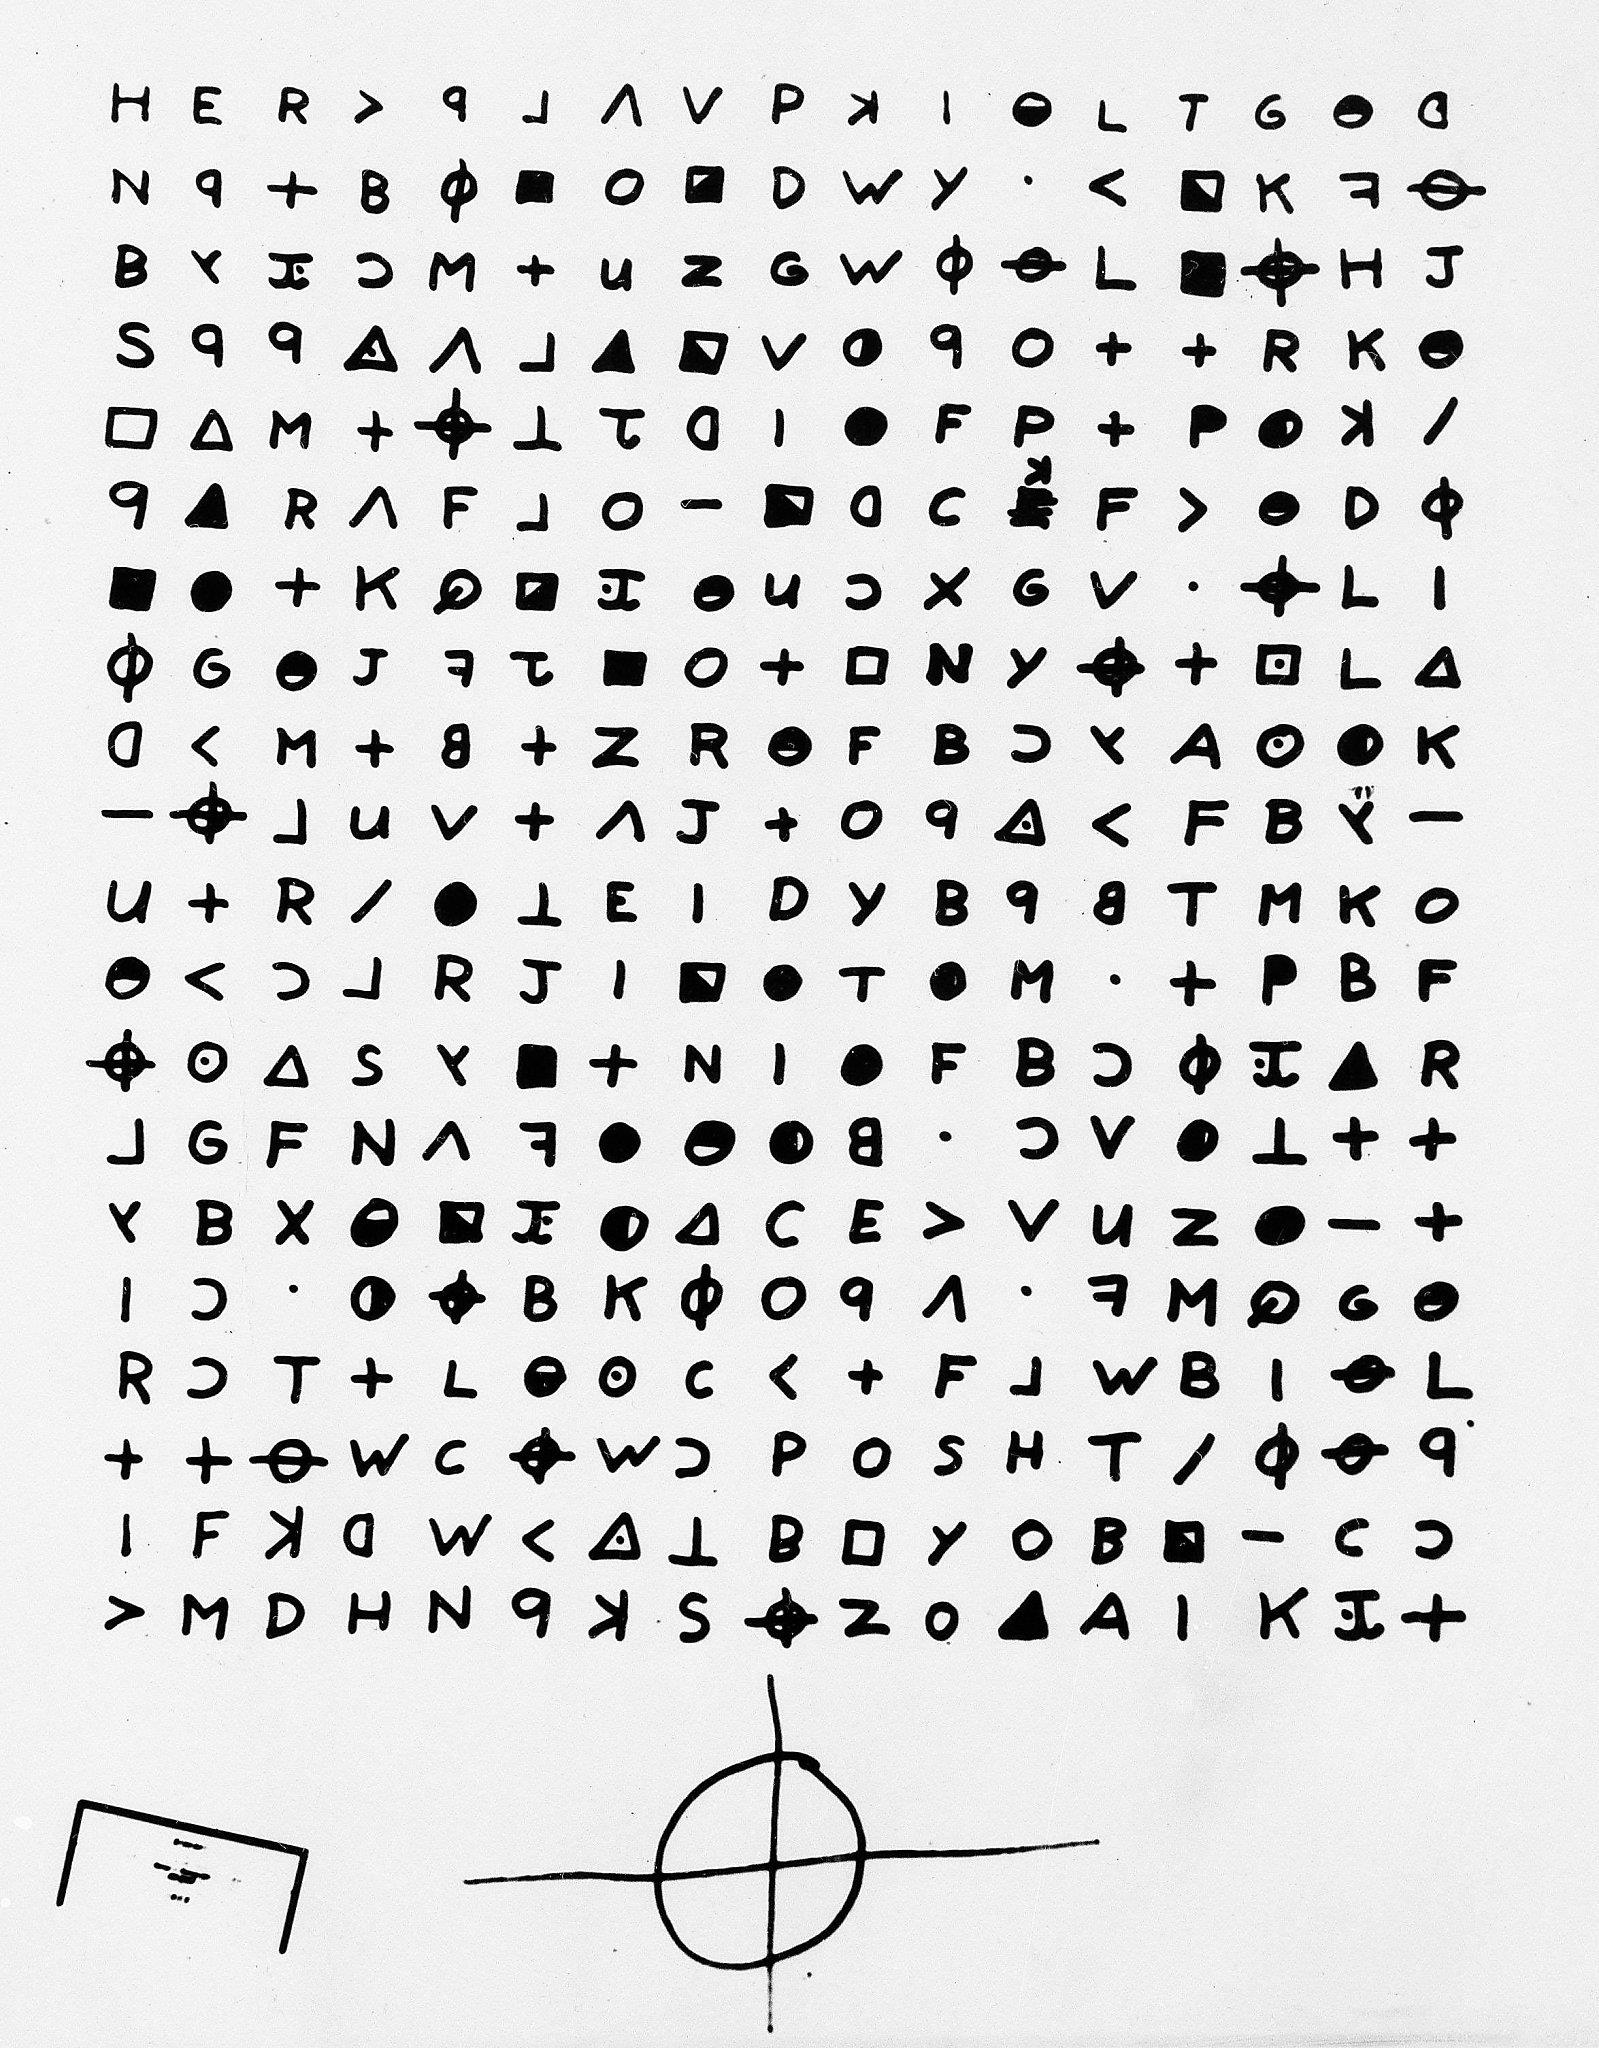 Zodiac Killer and the '340 Cipher': Our reporter answers your questions - San Francisco Chronicle